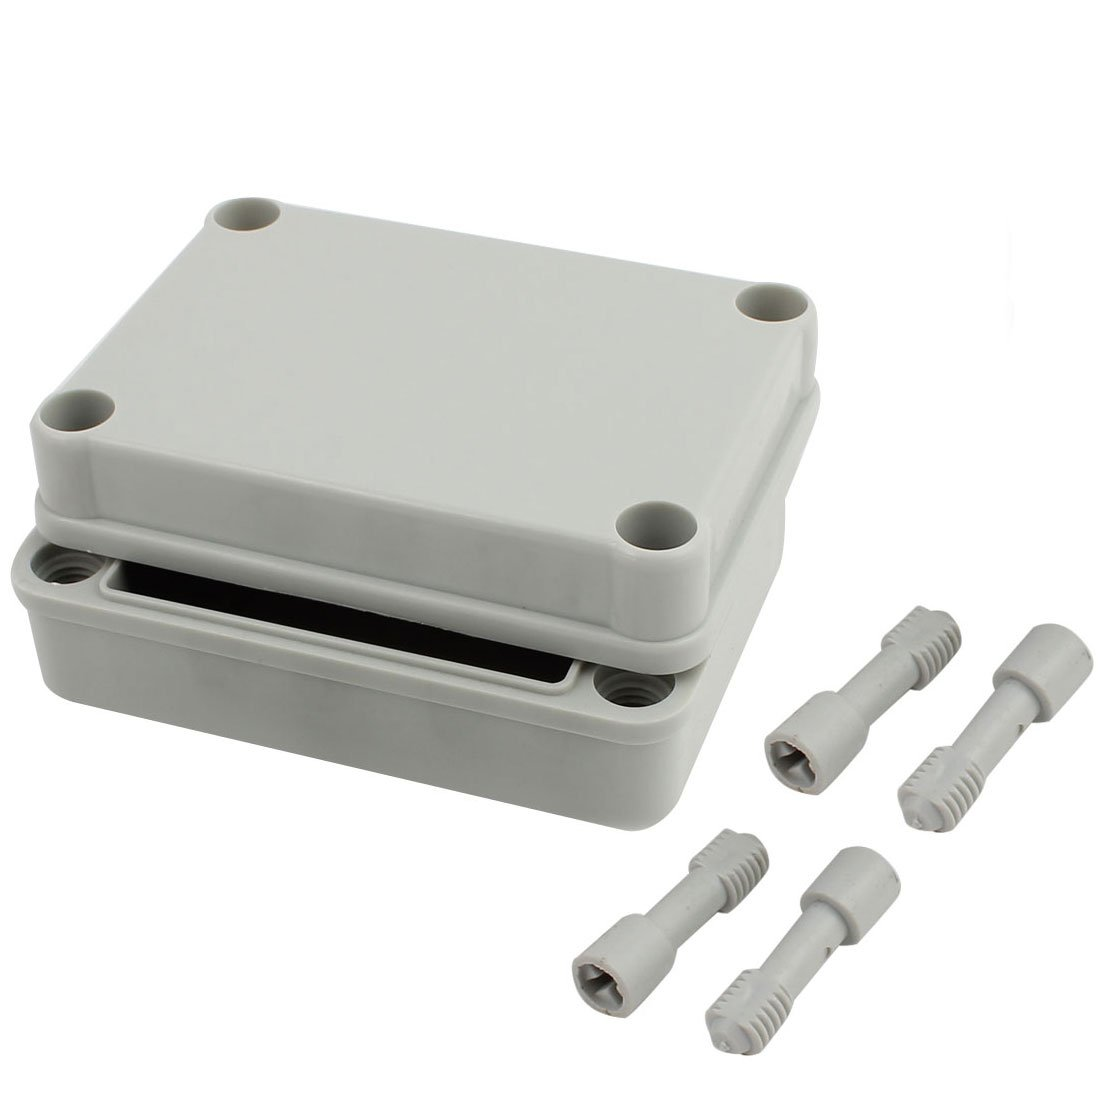 "Awclub 4.4""x3.2""x1.8""(110mmx80mmx45mm) Dustproof IP65 Junction Box DIY Case Enclosure Gray"